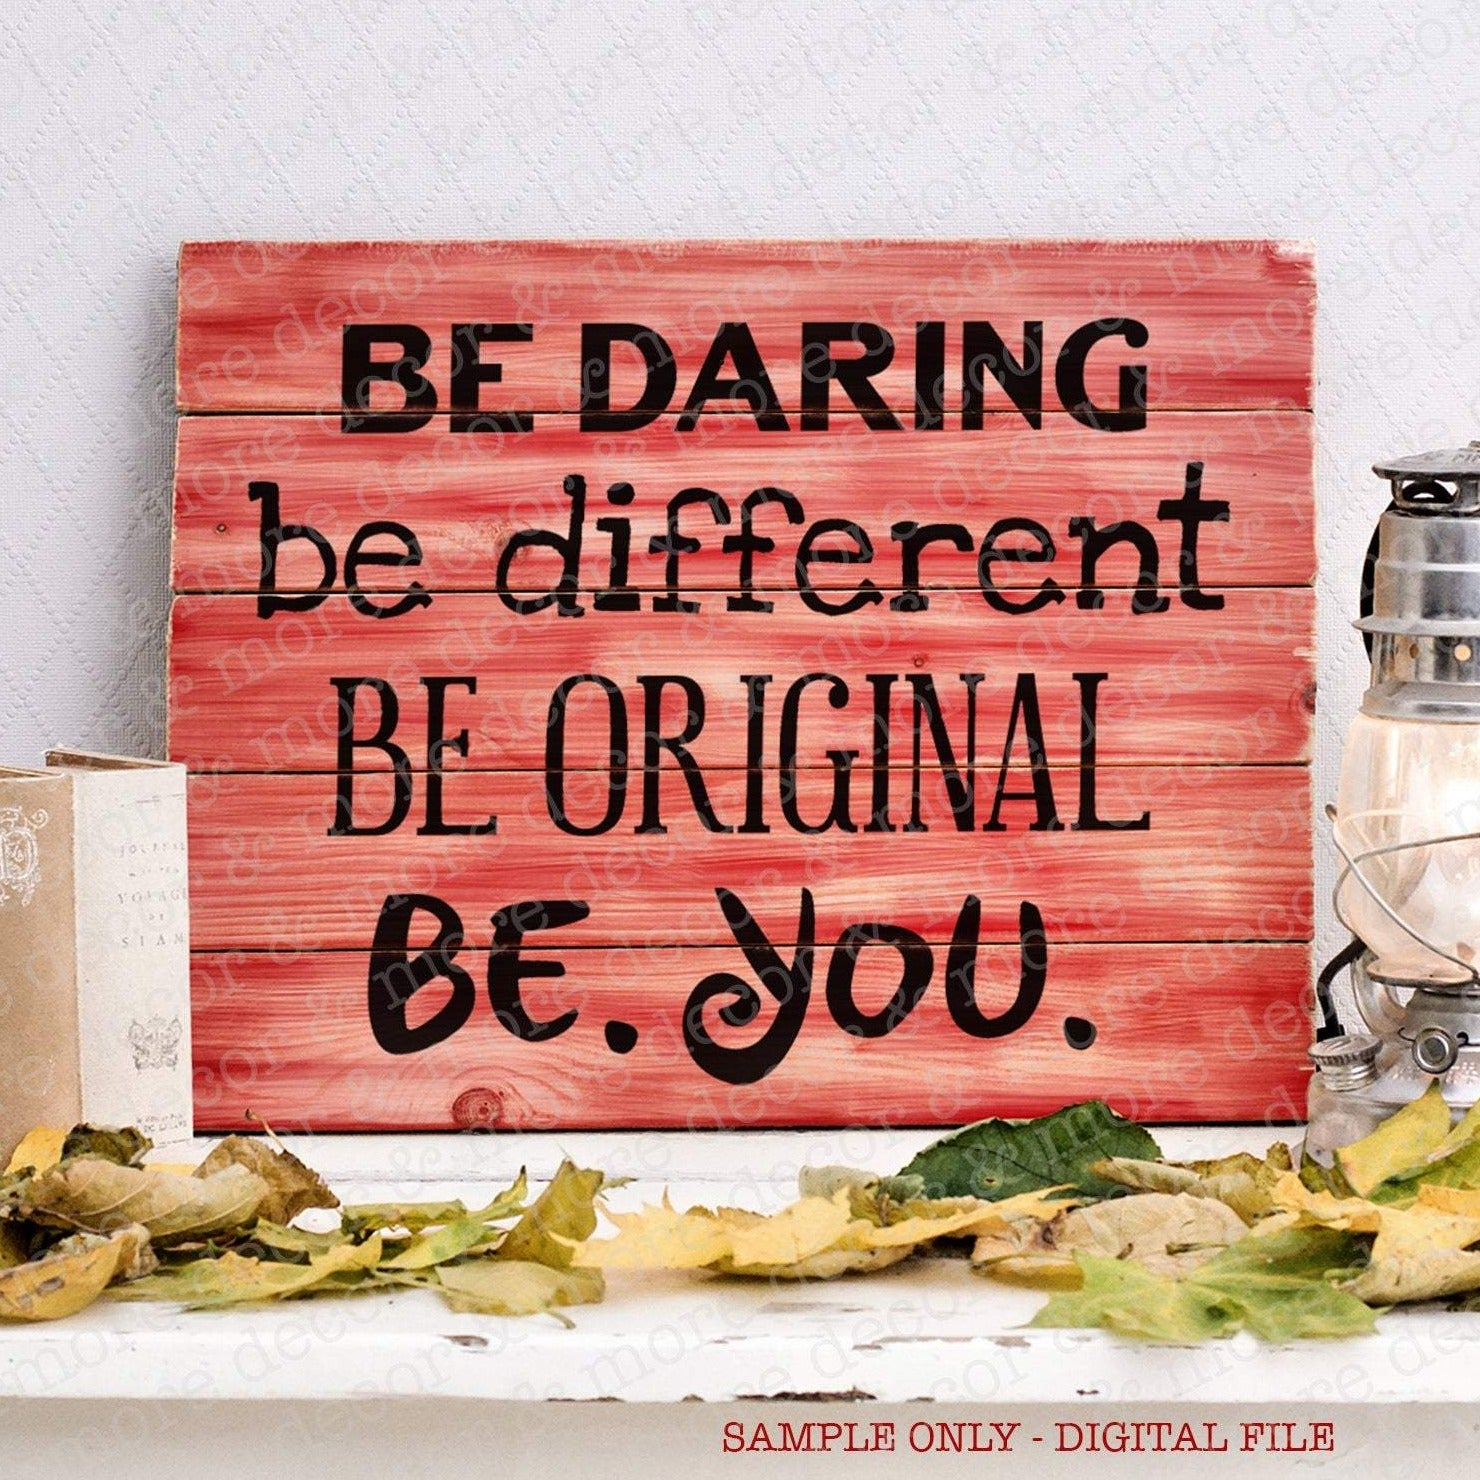 INSPIRATIONAL QUOTE SVG, Inspirational Saying SVG Cut File, Be You SVG File, Be Different SVG, Be Original SVG Saying